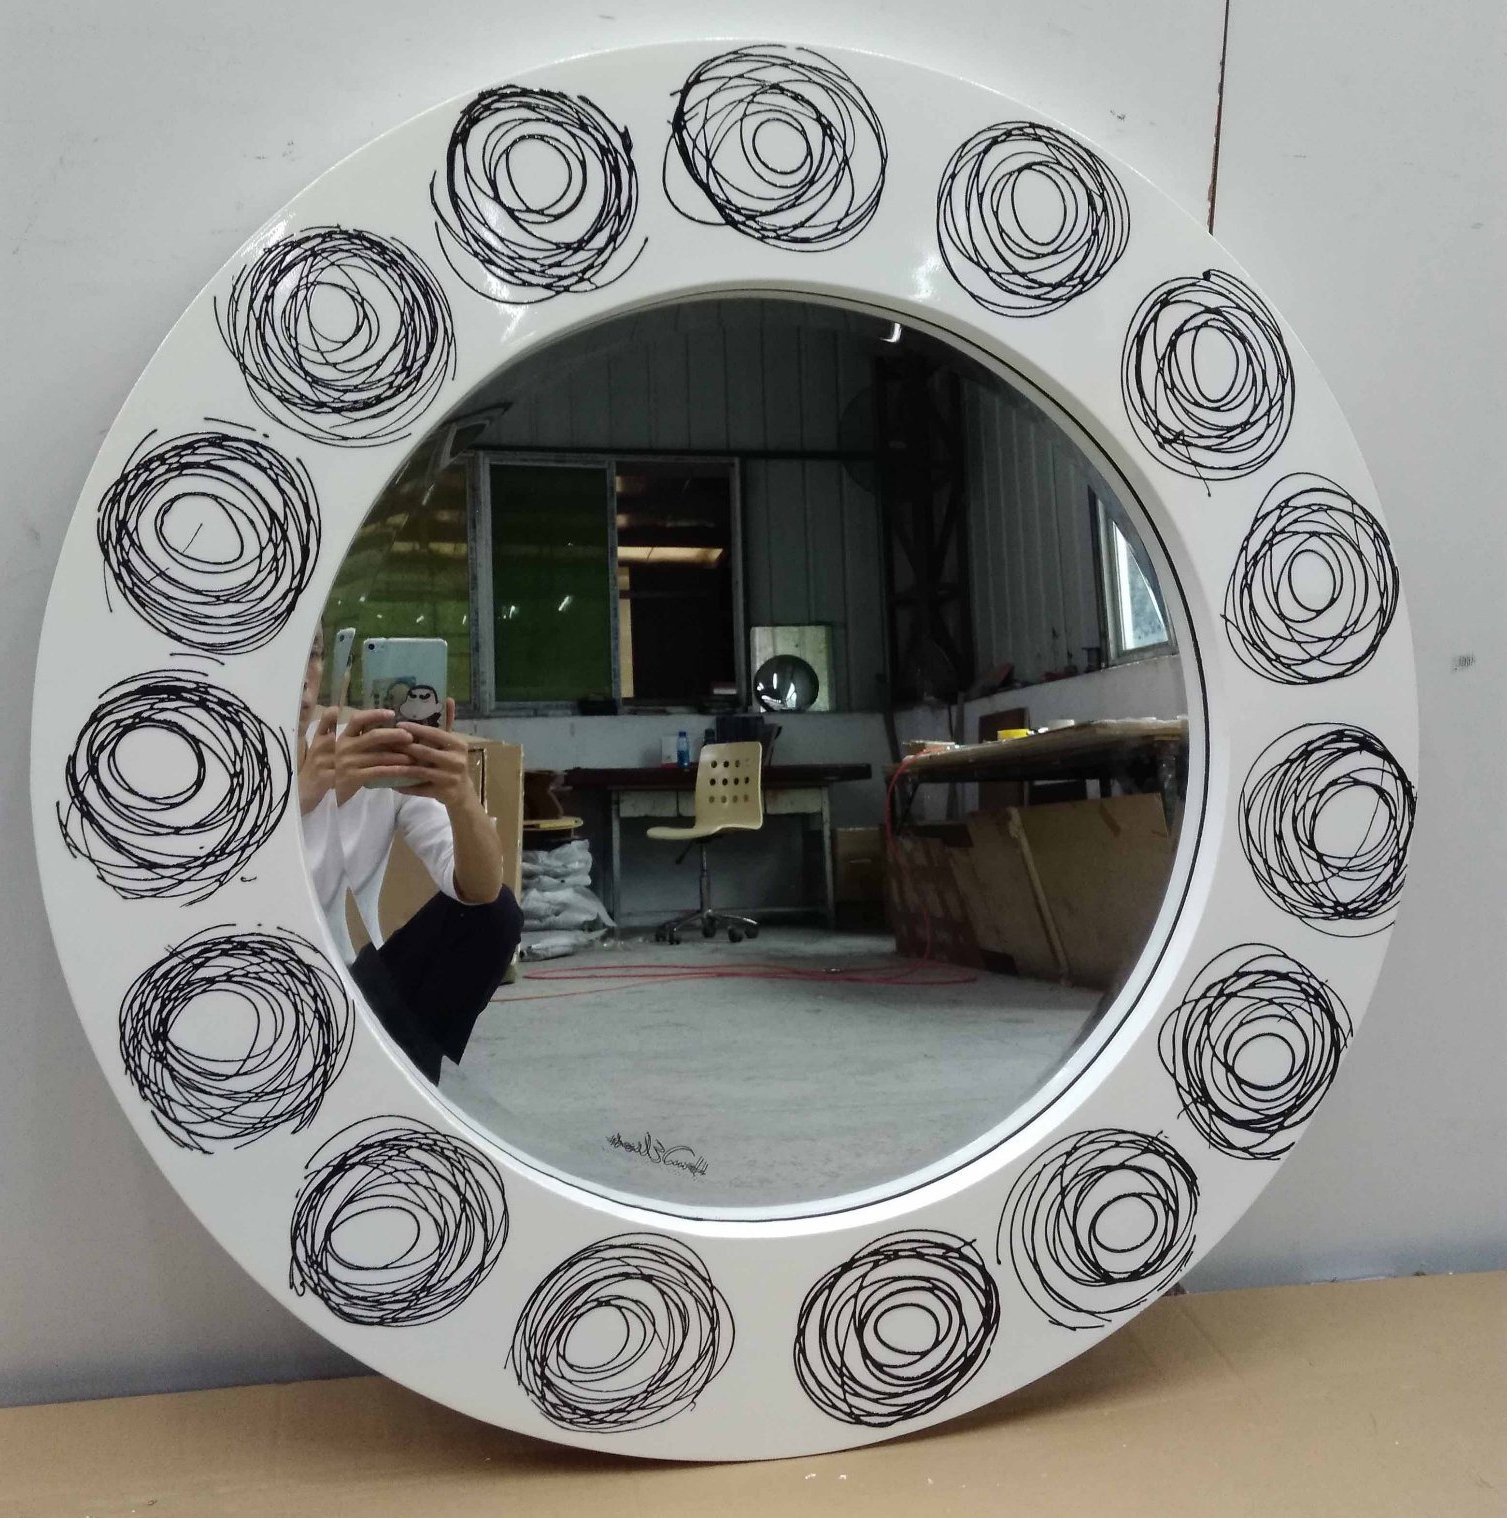 [%[hot Item] Loops Art Round Modern Decorative Wall Mirror (lh M17012) Throughout Latest Modern Decorative Wall Mirrors|modern Decorative Wall Mirrors Throughout Widely Used [hot Item] Loops Art Round Modern Decorative Wall Mirror (lh M17012)|well Liked Modern Decorative Wall Mirrors For [hot Item] Loops Art Round Modern Decorative Wall Mirror (lh M17012)|trendy [hot Item] Loops Art Round Modern Decorative Wall Mirror (lh M17012) With Regard To Modern Decorative Wall Mirrors%] (View 20 of 20)